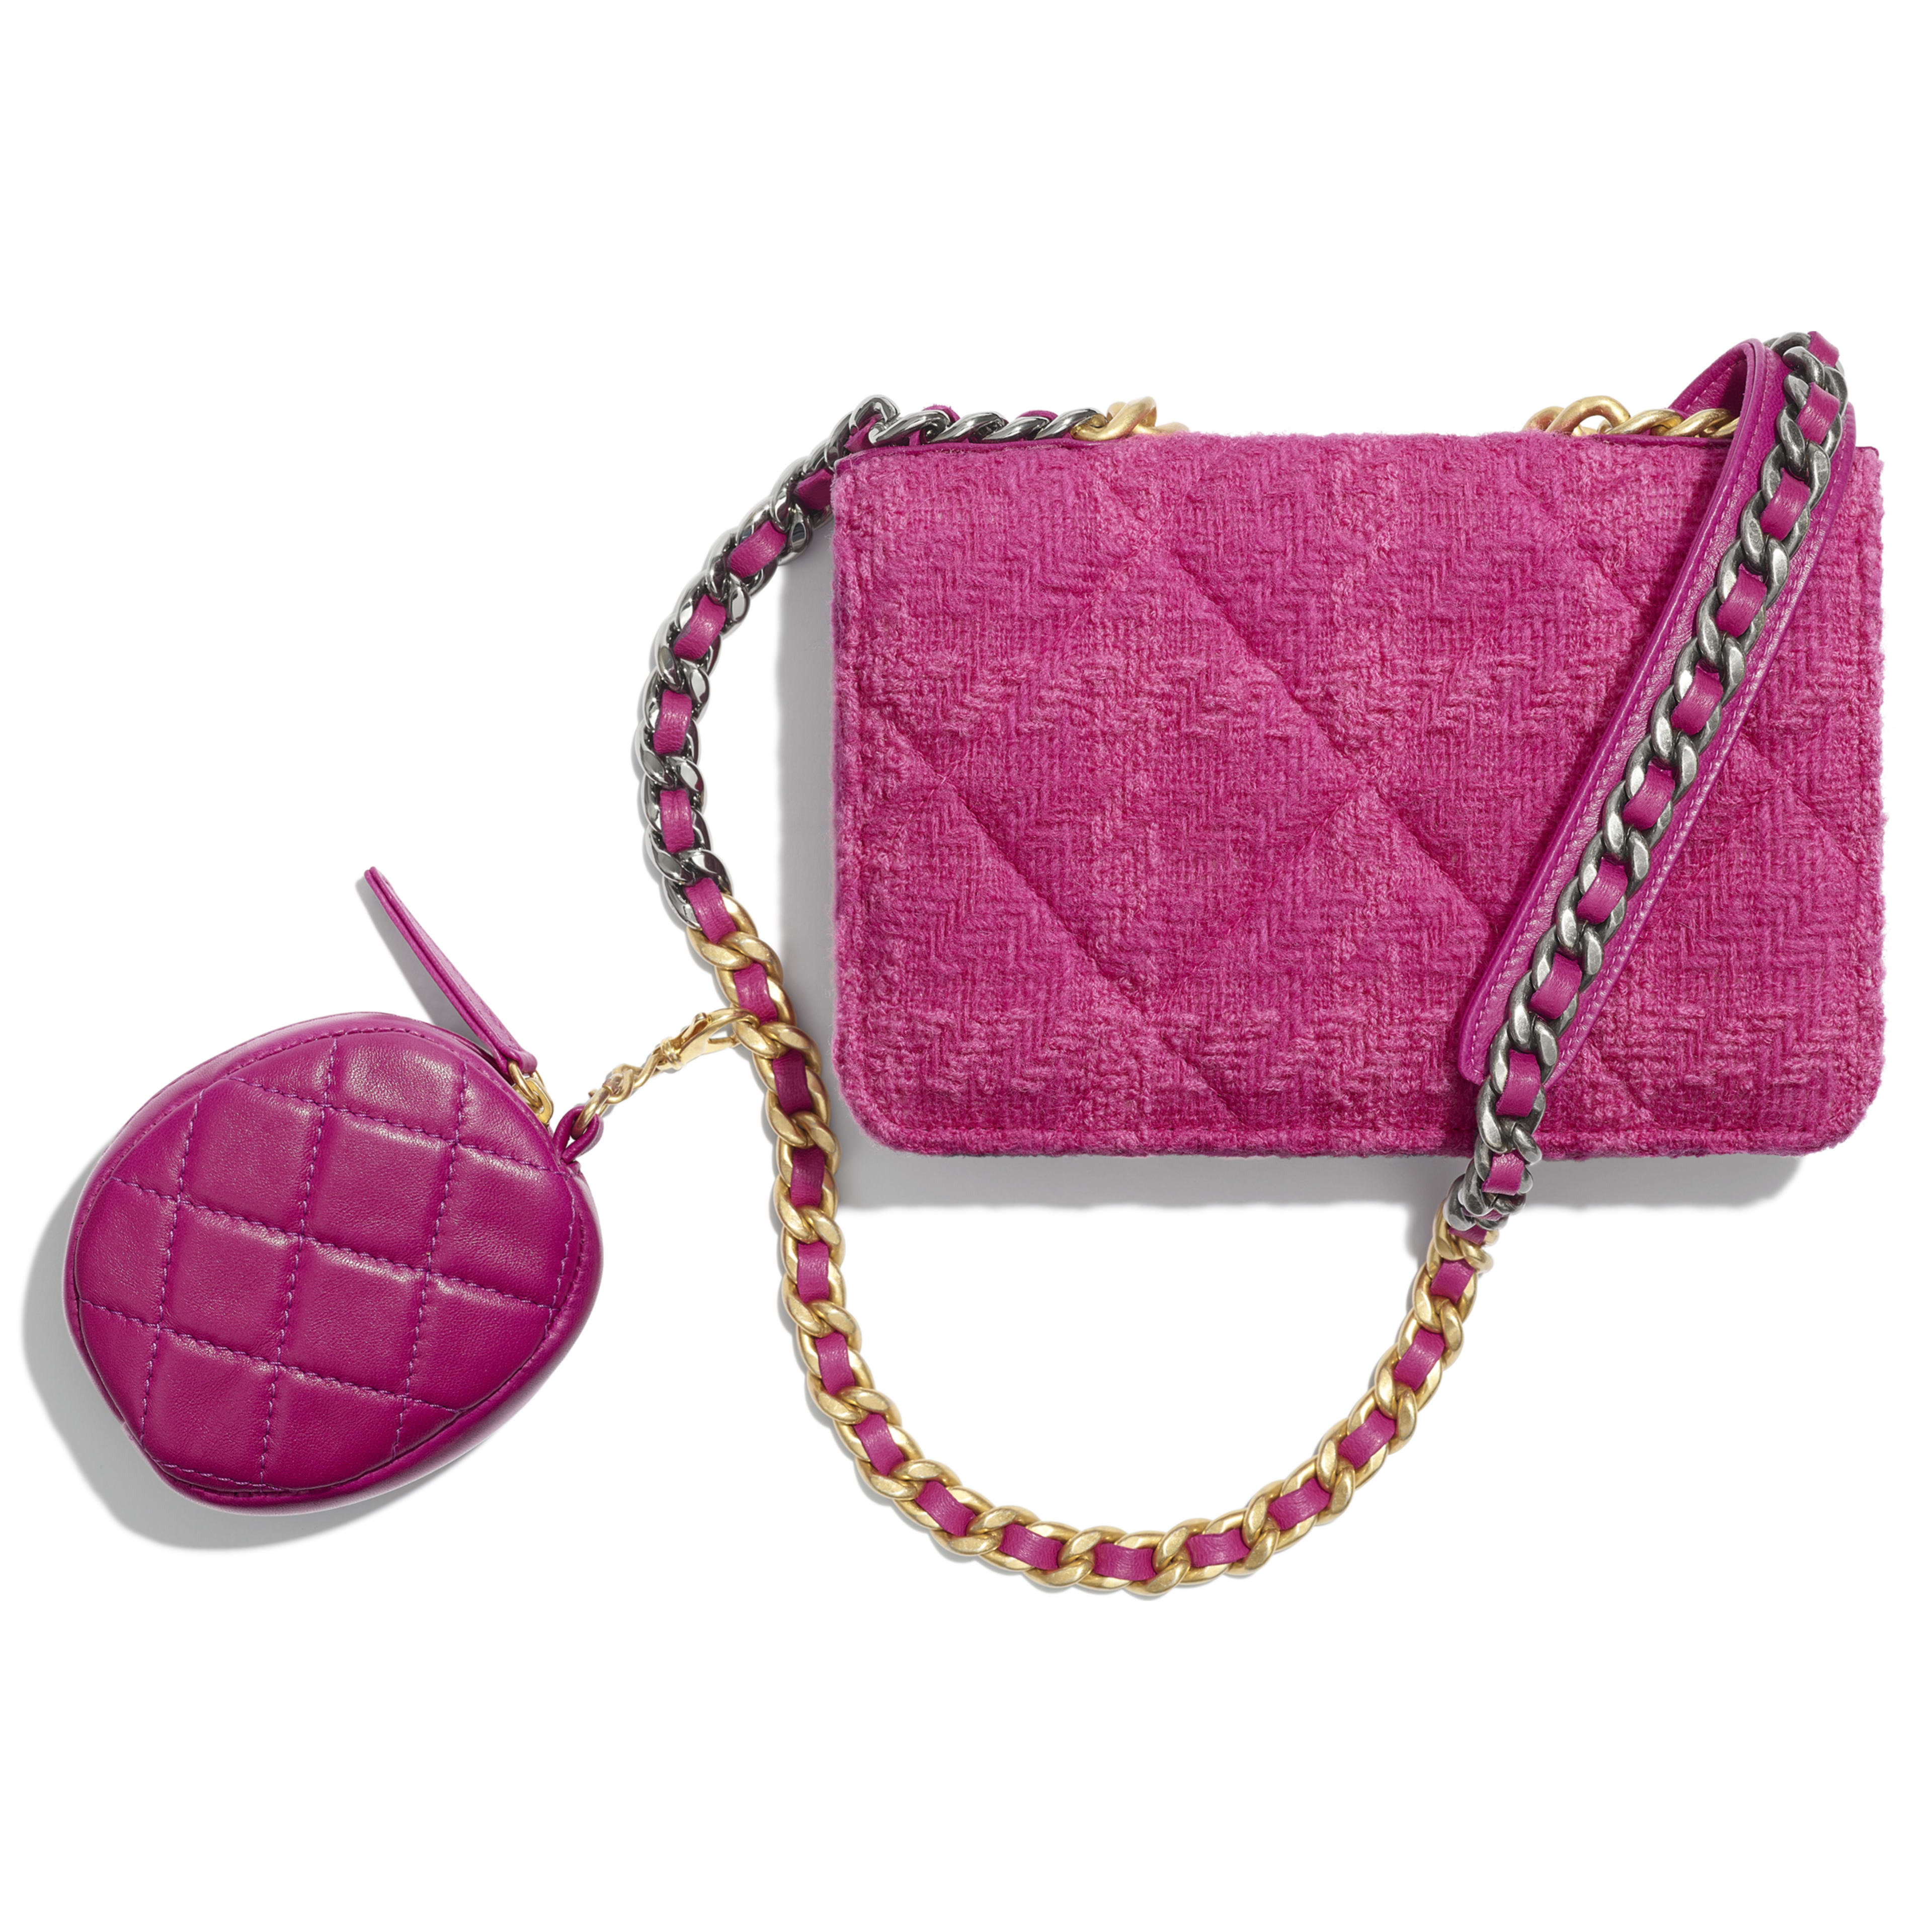 CHANEL 19 Wallet on Chain & Coin Purse - Fuchsia - Wool Tweed, Lambskin, Gold-Tone, Silver-Tone & Ruthenium-Finish Metal - Alternative view - see full sized version